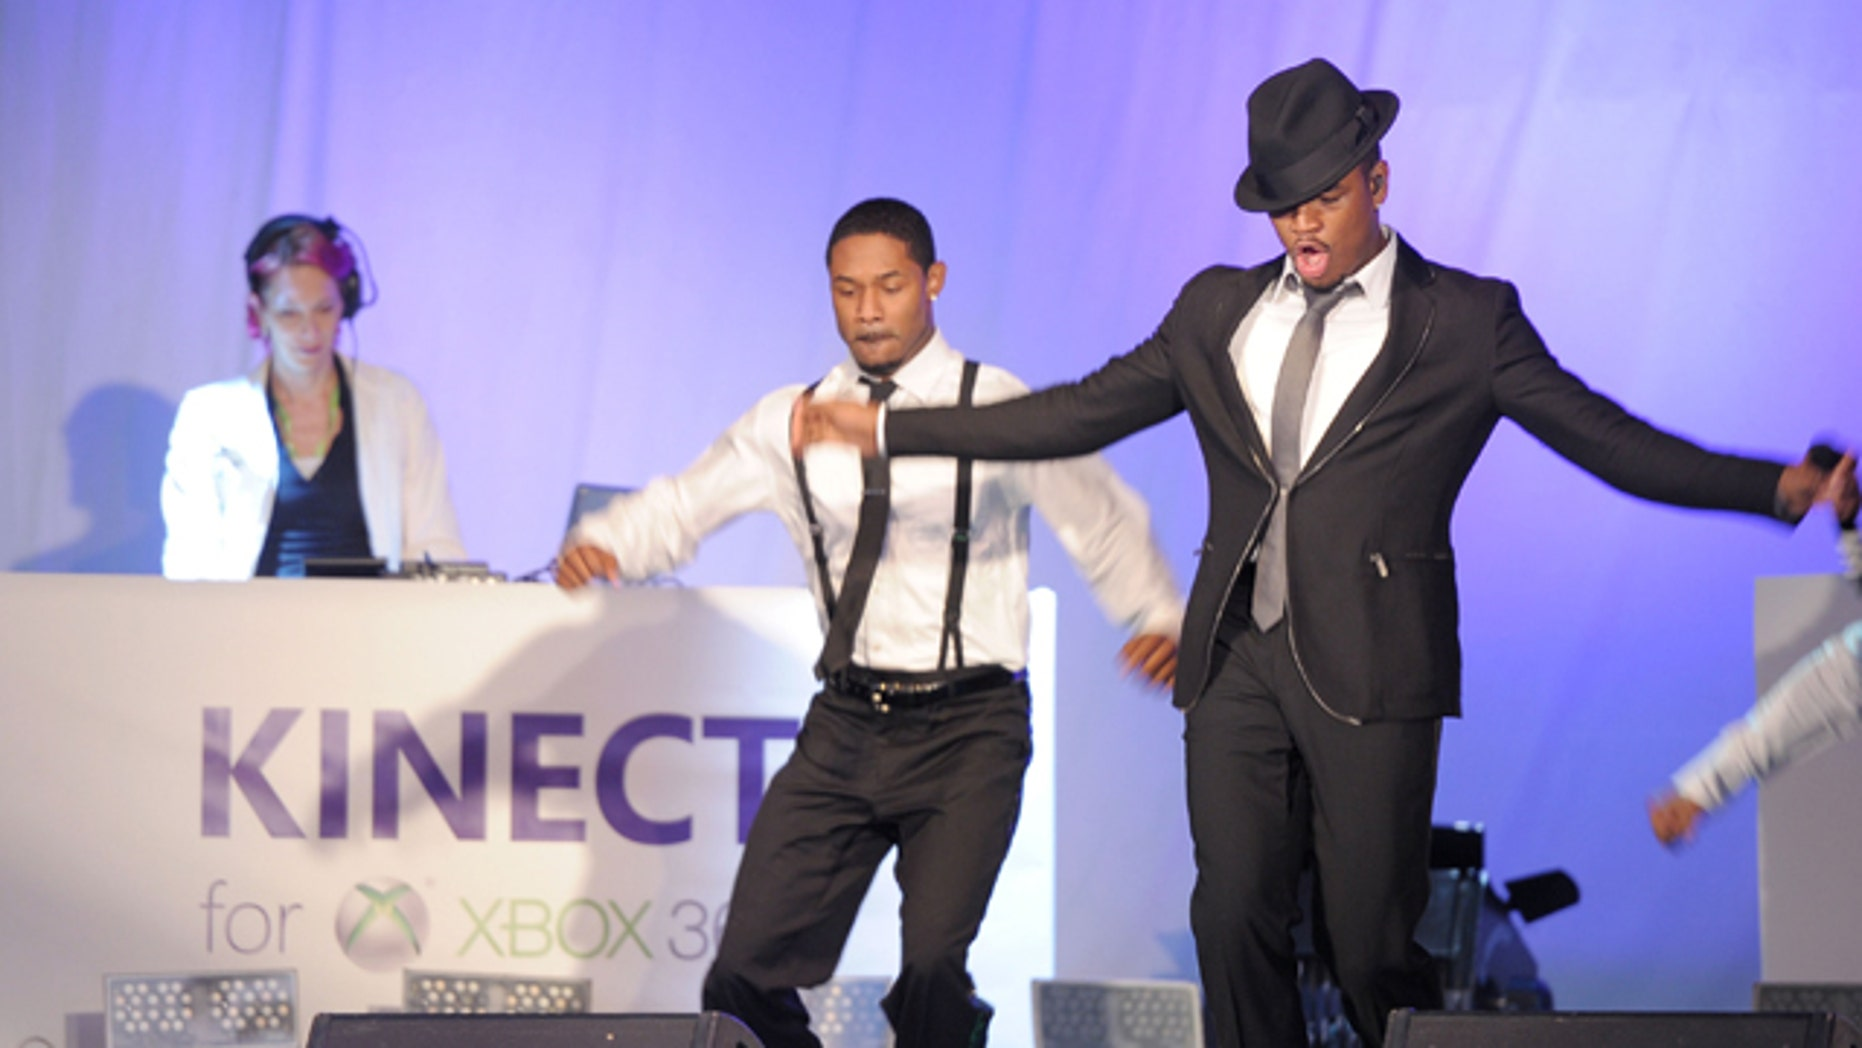 Thousands groove with Grammy Award Winning Ne-Yo in Times Square to the music and steps from Dance Central, a game by MTV Games/Harmonix, at Kinect for Xbox 360 event in New York City.